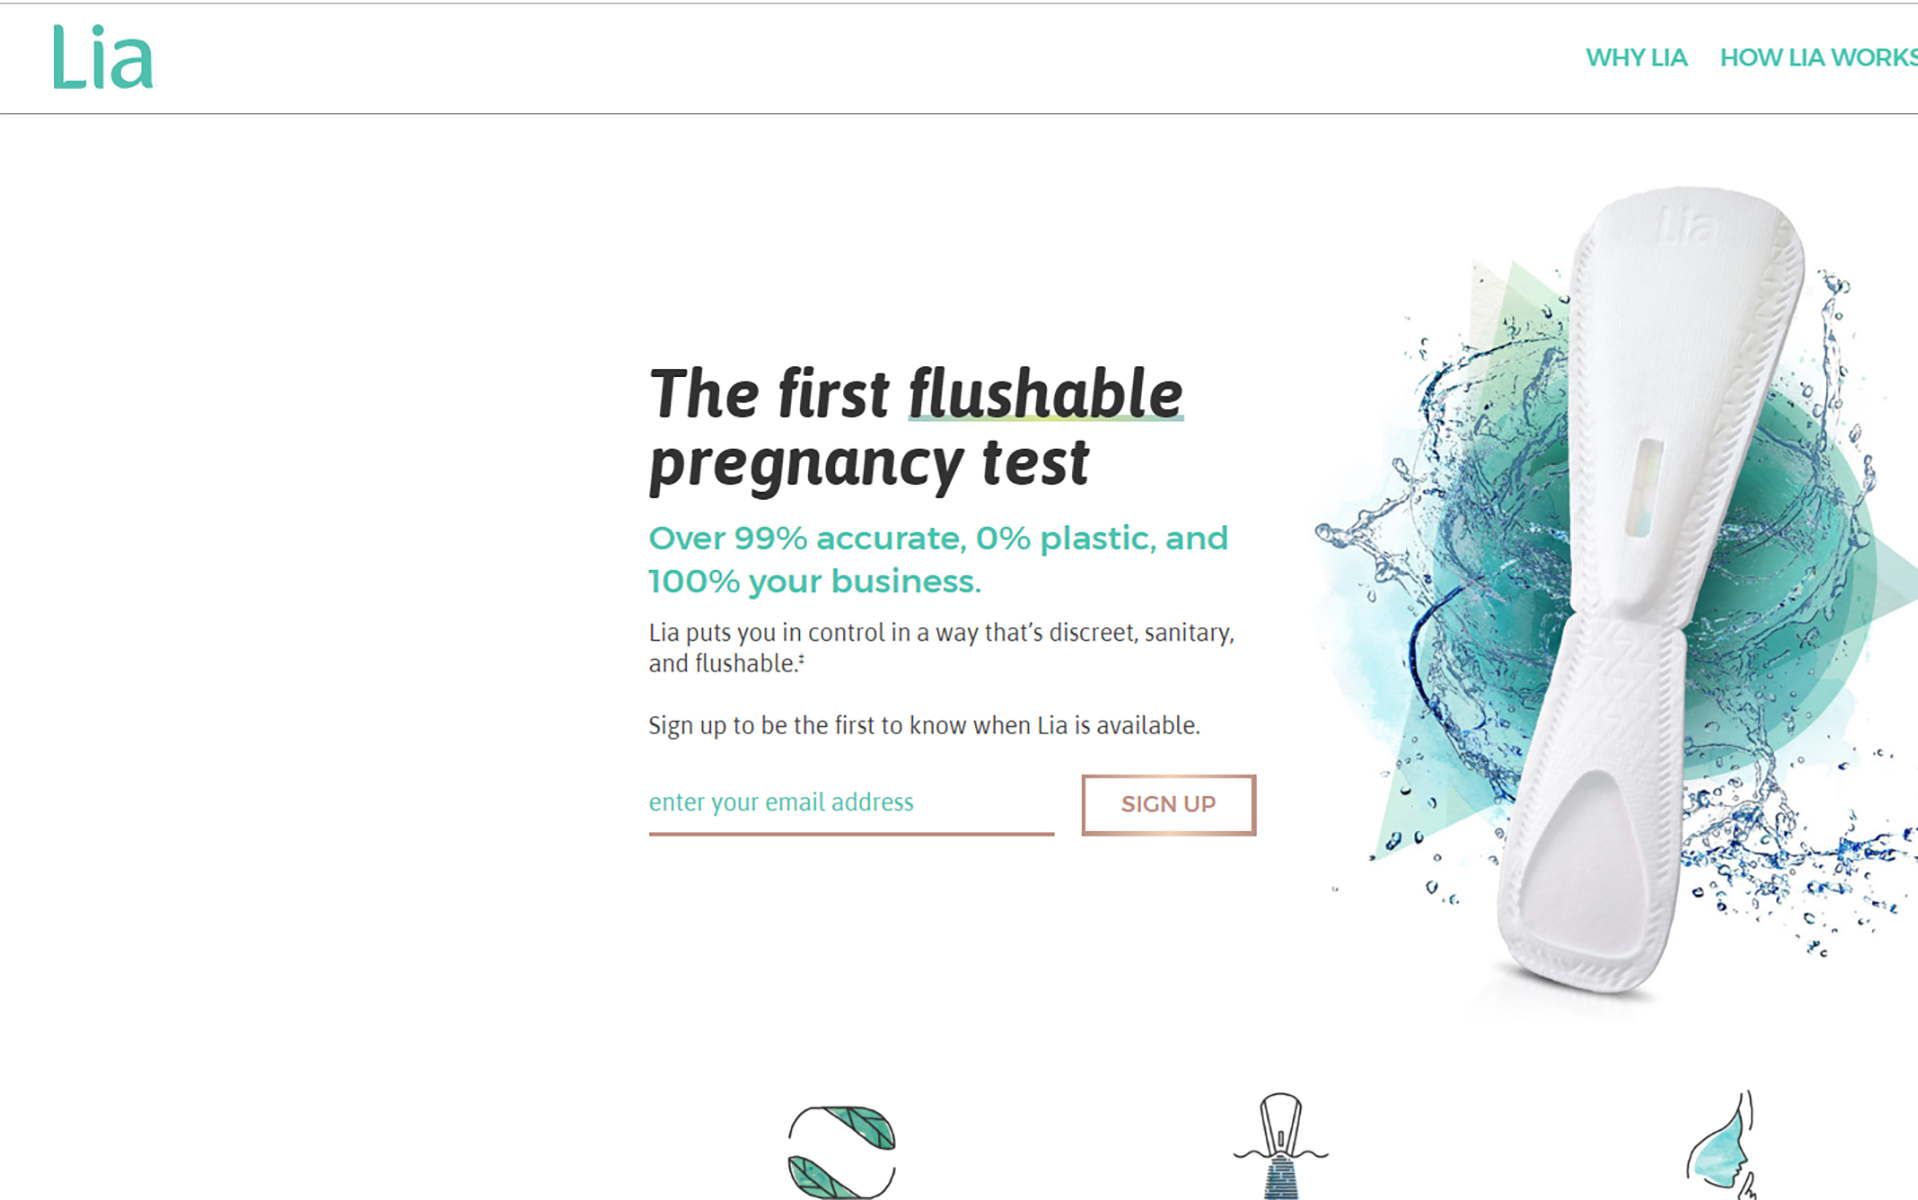 Lia homepage with image of test device